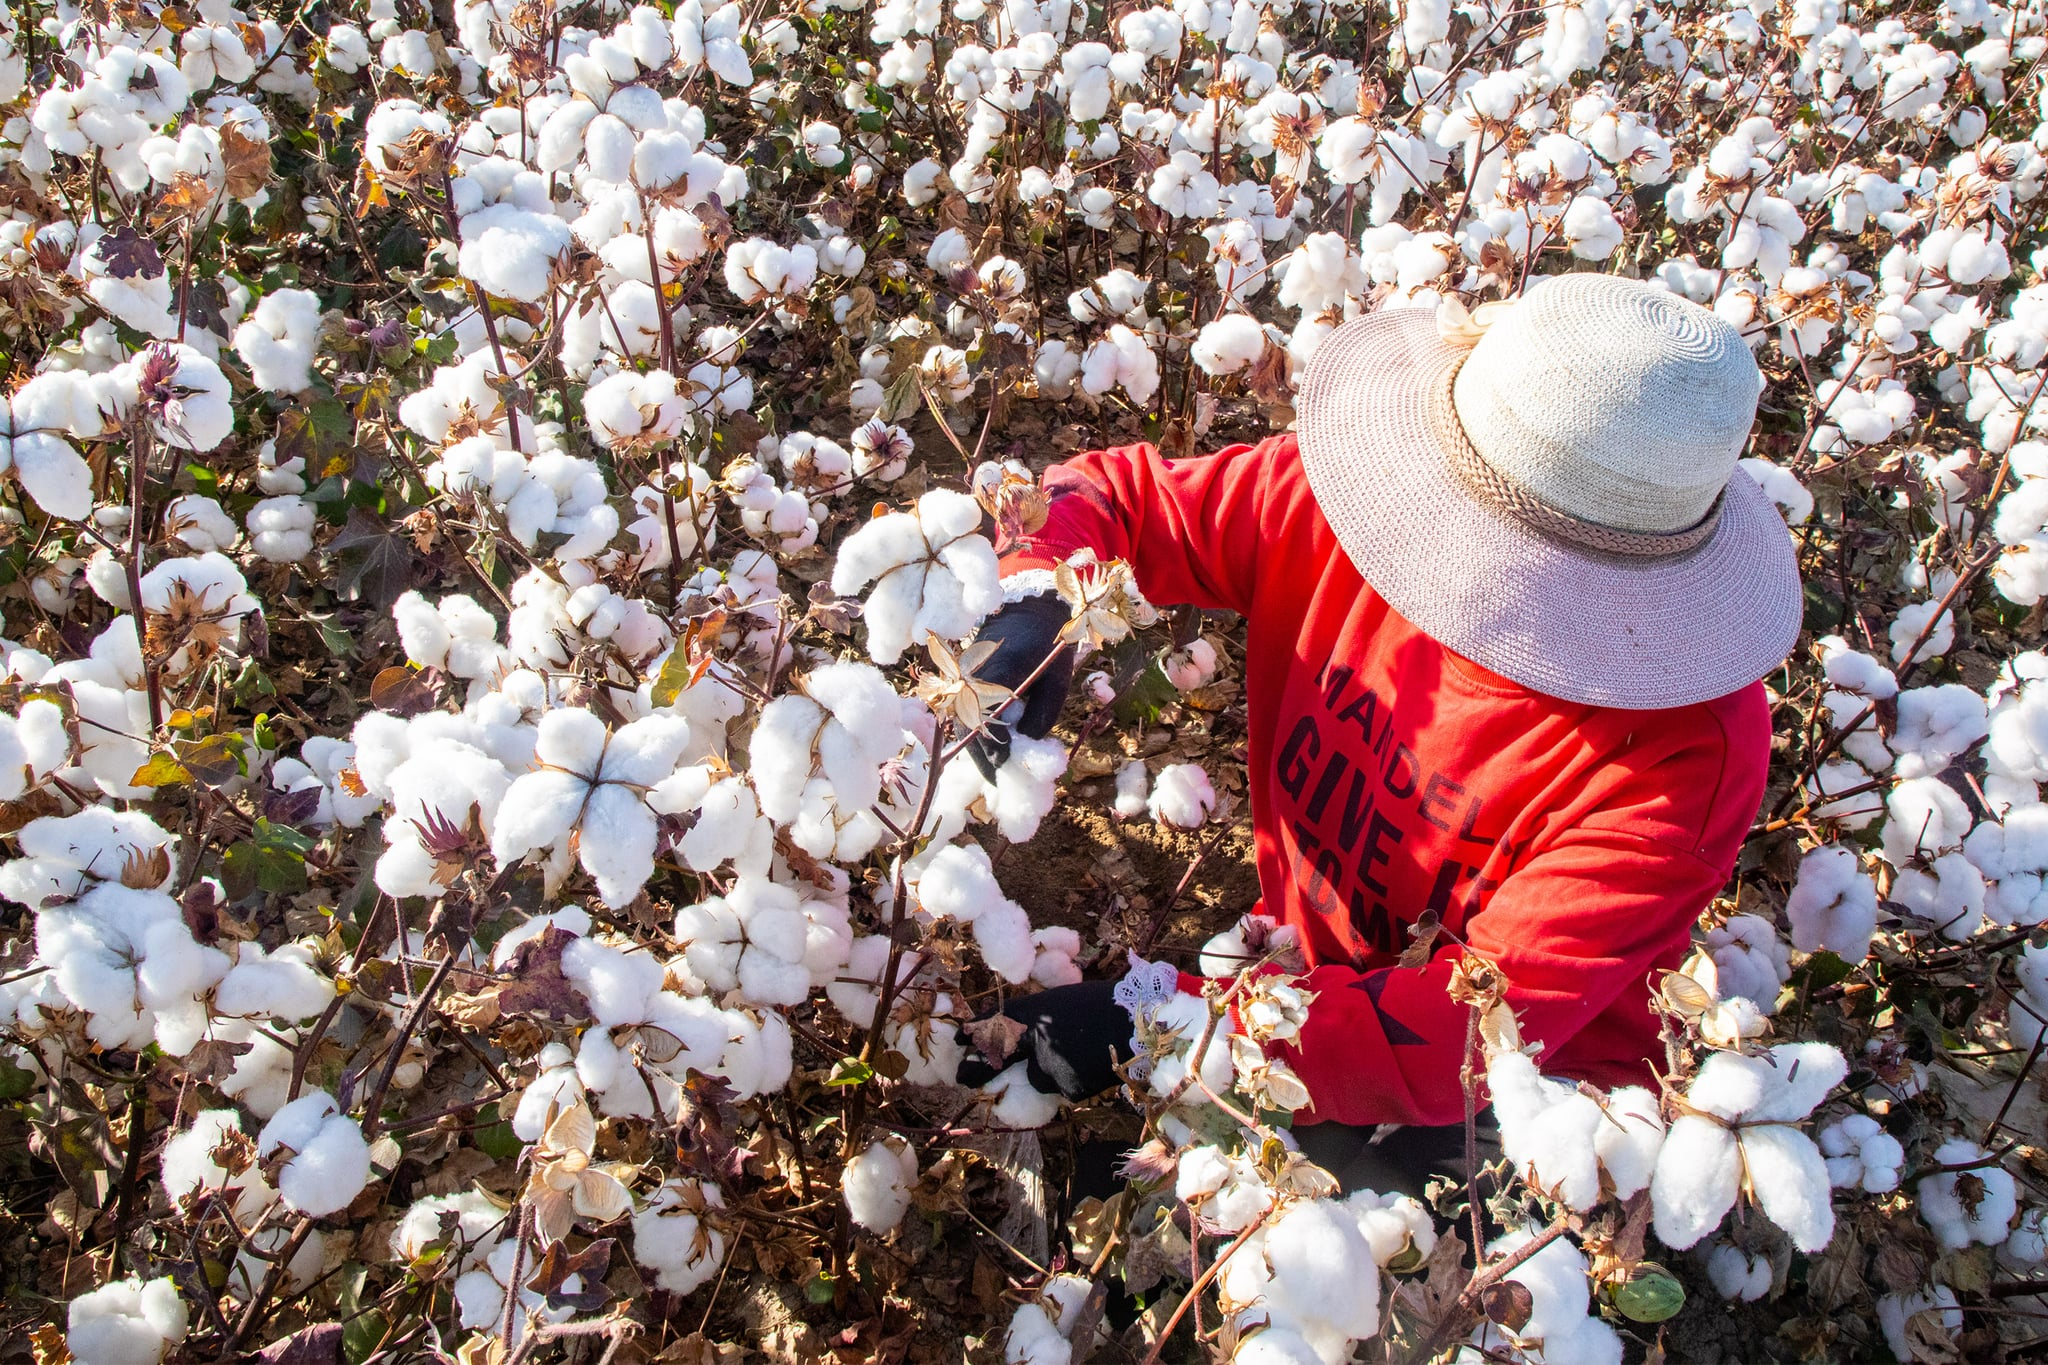 HAMI, CHINA - OCTOBER 09: A farmer harvests cotton in a field on October 10, 2020 in Hami, Xinjiang Uygur Autonomous Region of China. (Photo by Pulati Niyazi/VCG via Getty Images)